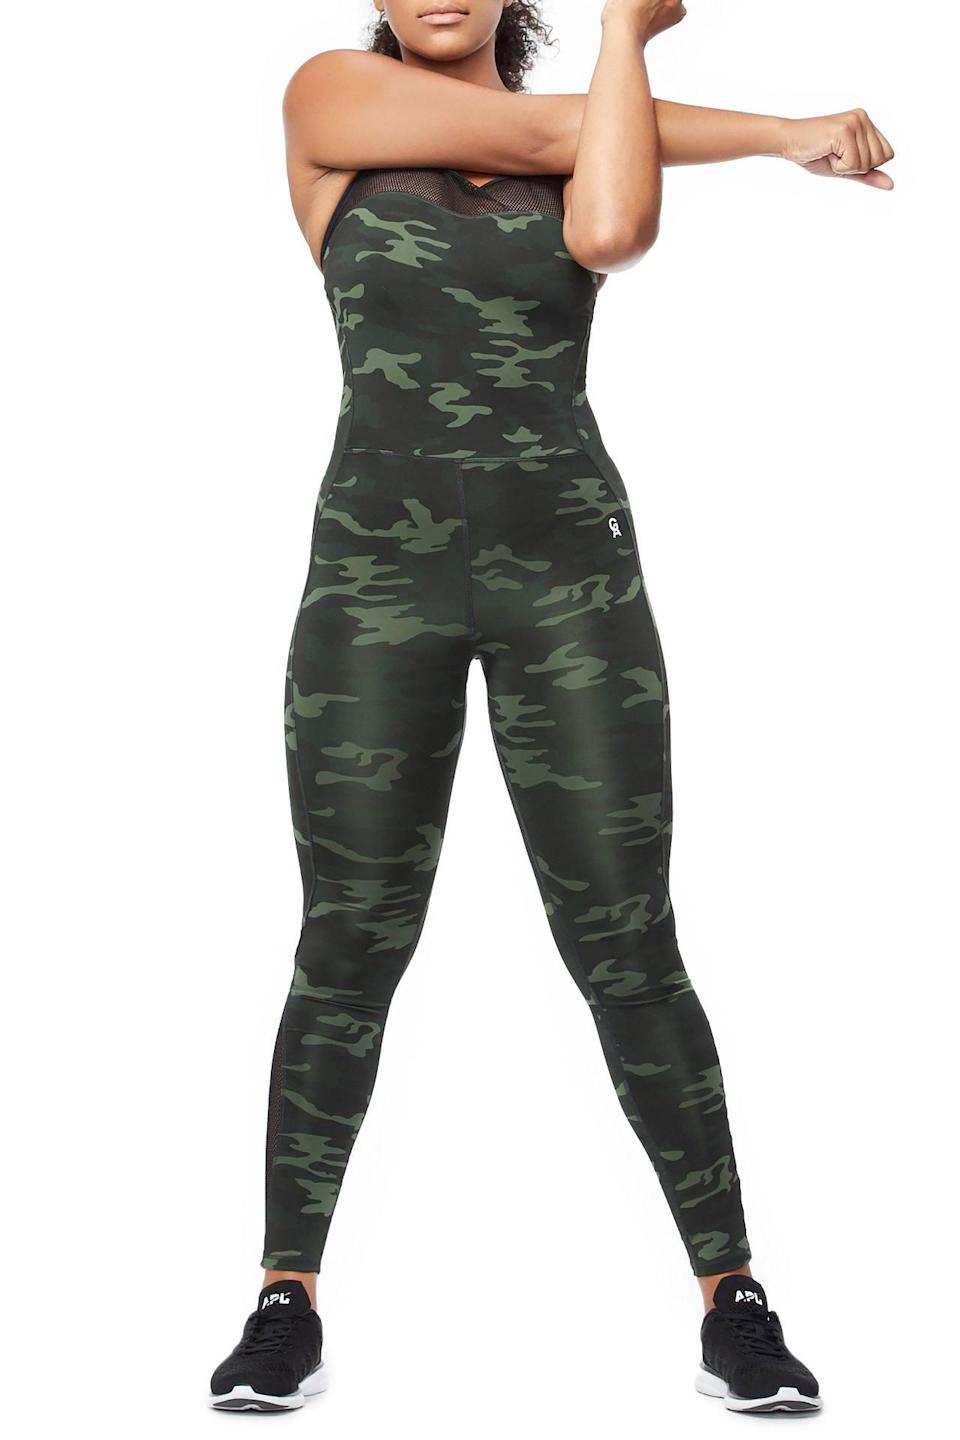 "<p>This full-body camo jumpsuit has mesh details with extra bust support so you don't have to worry about wearing another sports bra underneath.<br><a href=""https://fave.co/2VrSm3z"" rel=""nofollow noopener"" target=""_blank"" data-ylk=""slk:Shop it:"" class=""link rapid-noclick-resp""><strong>Shop it:</strong> </a>The Curve Sculpt Jumpsuit, $159 (take 25% off with code EXTRA25), <a href=""https://fave.co/2VrSm3z"" rel=""nofollow noopener"" target=""_blank"" data-ylk=""slk:goodamerican.com"" class=""link rapid-noclick-resp"">goodamerican.com</a> </p>"